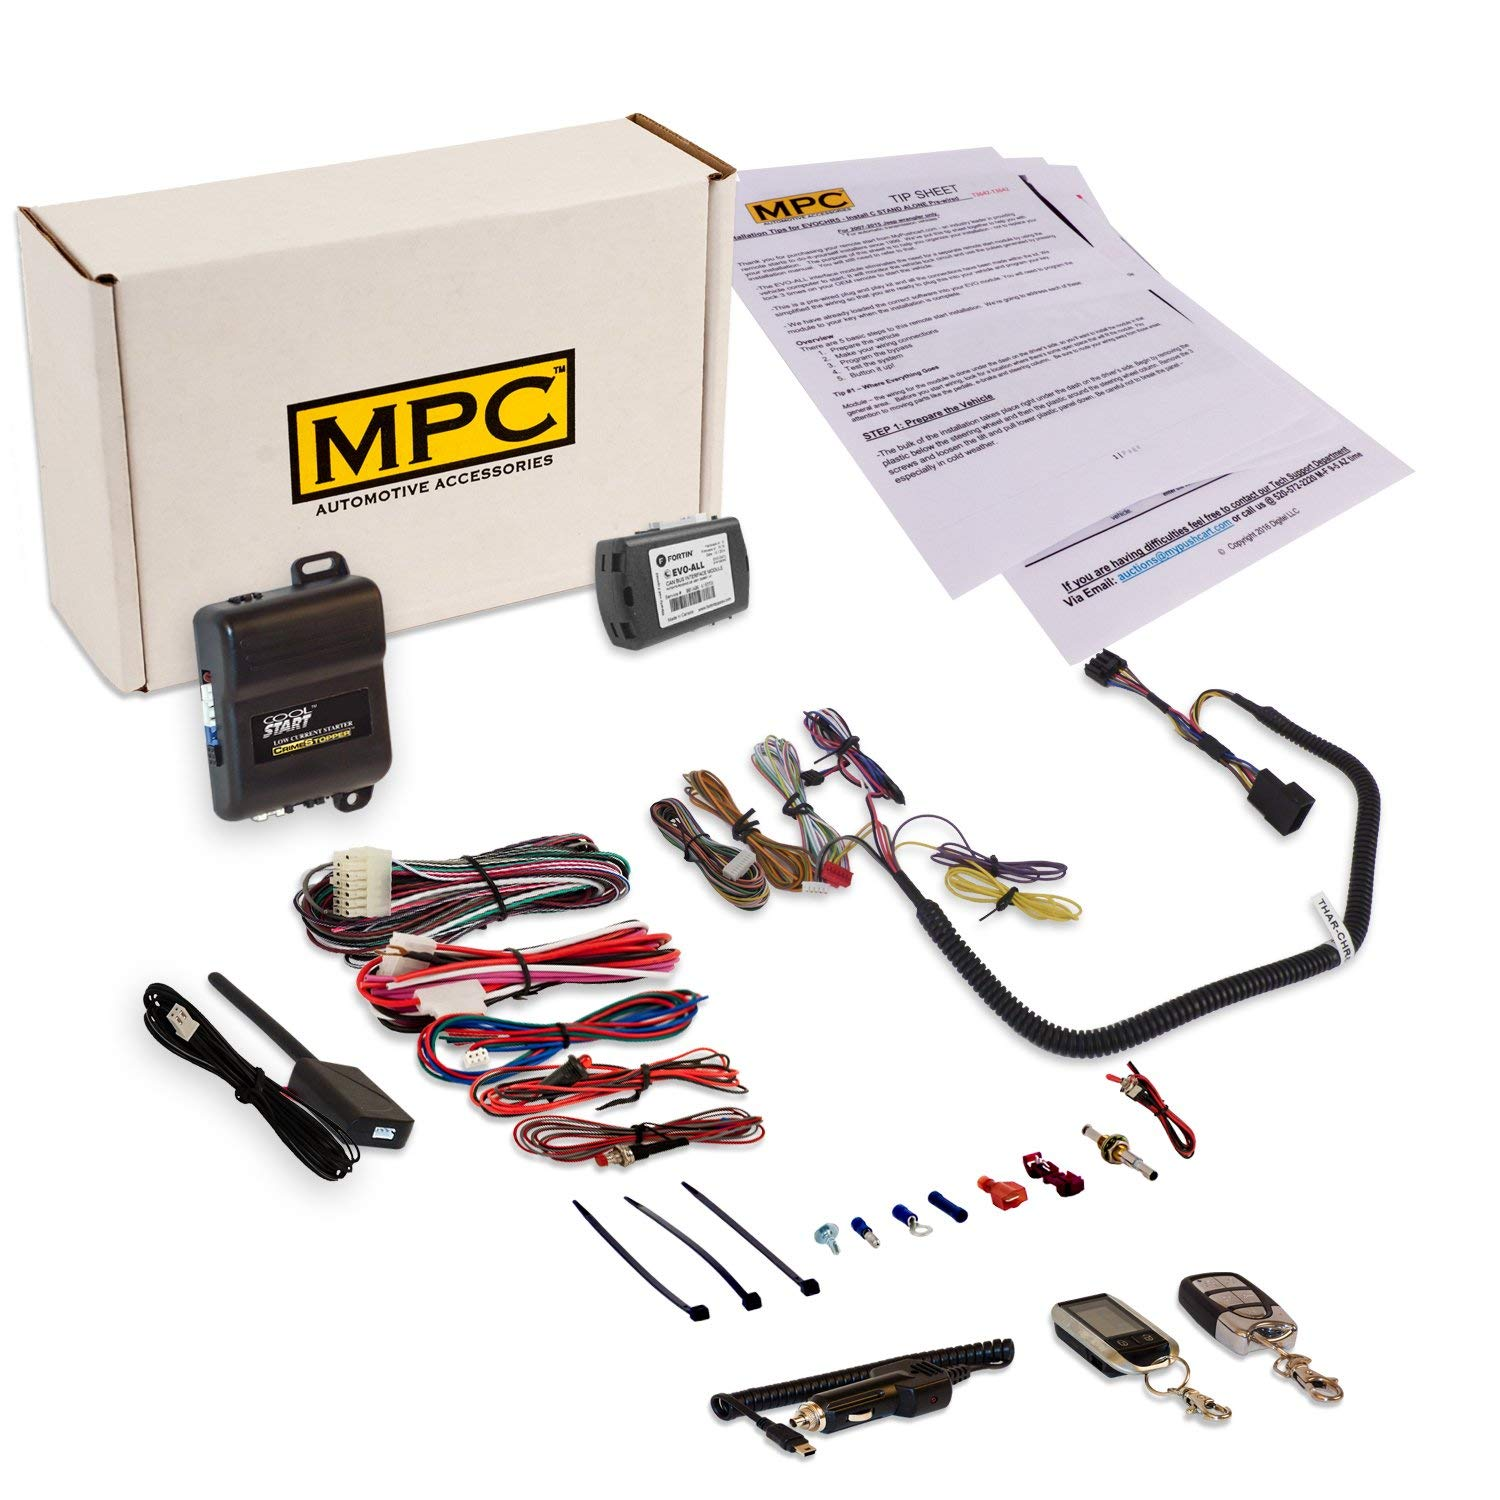 cheap jeep remote start find jeep remote start deals on line at